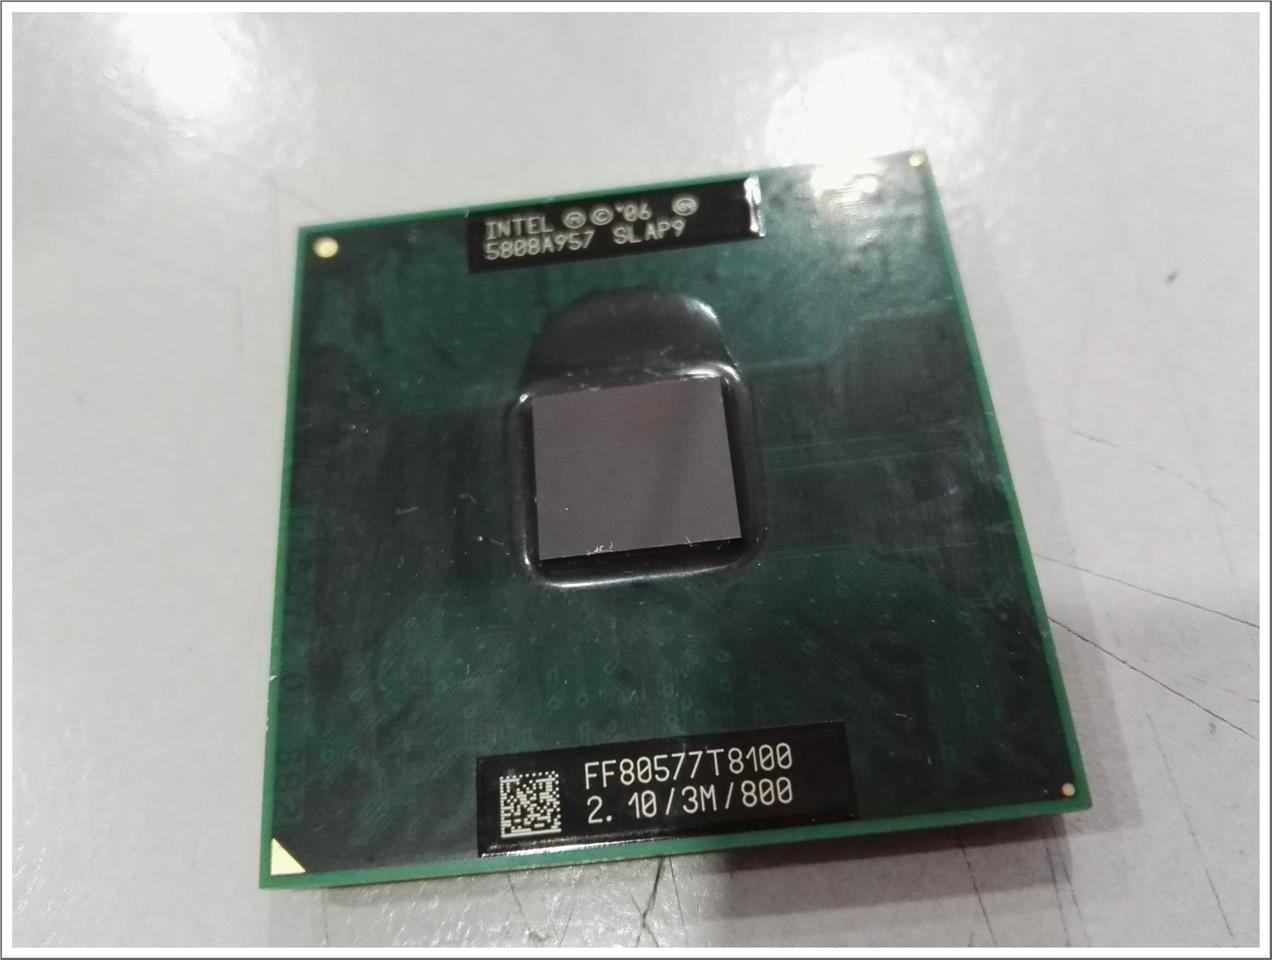 Intel Core2Duo T8100 (3MB, 2.1GHz, 800MHz FSB) CPU